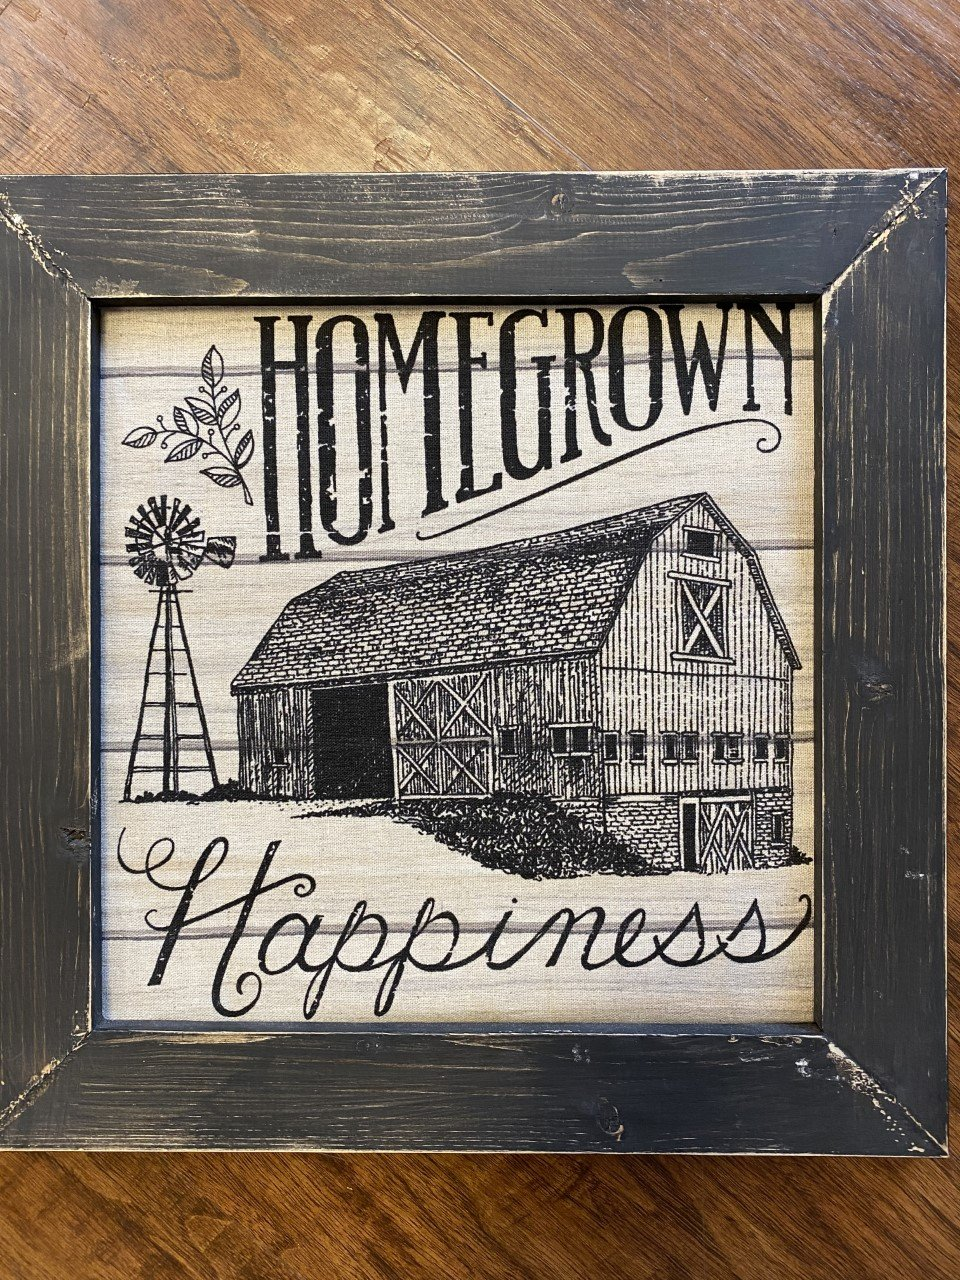 Homegrown Happiness framed 12-1/2x12-1/2